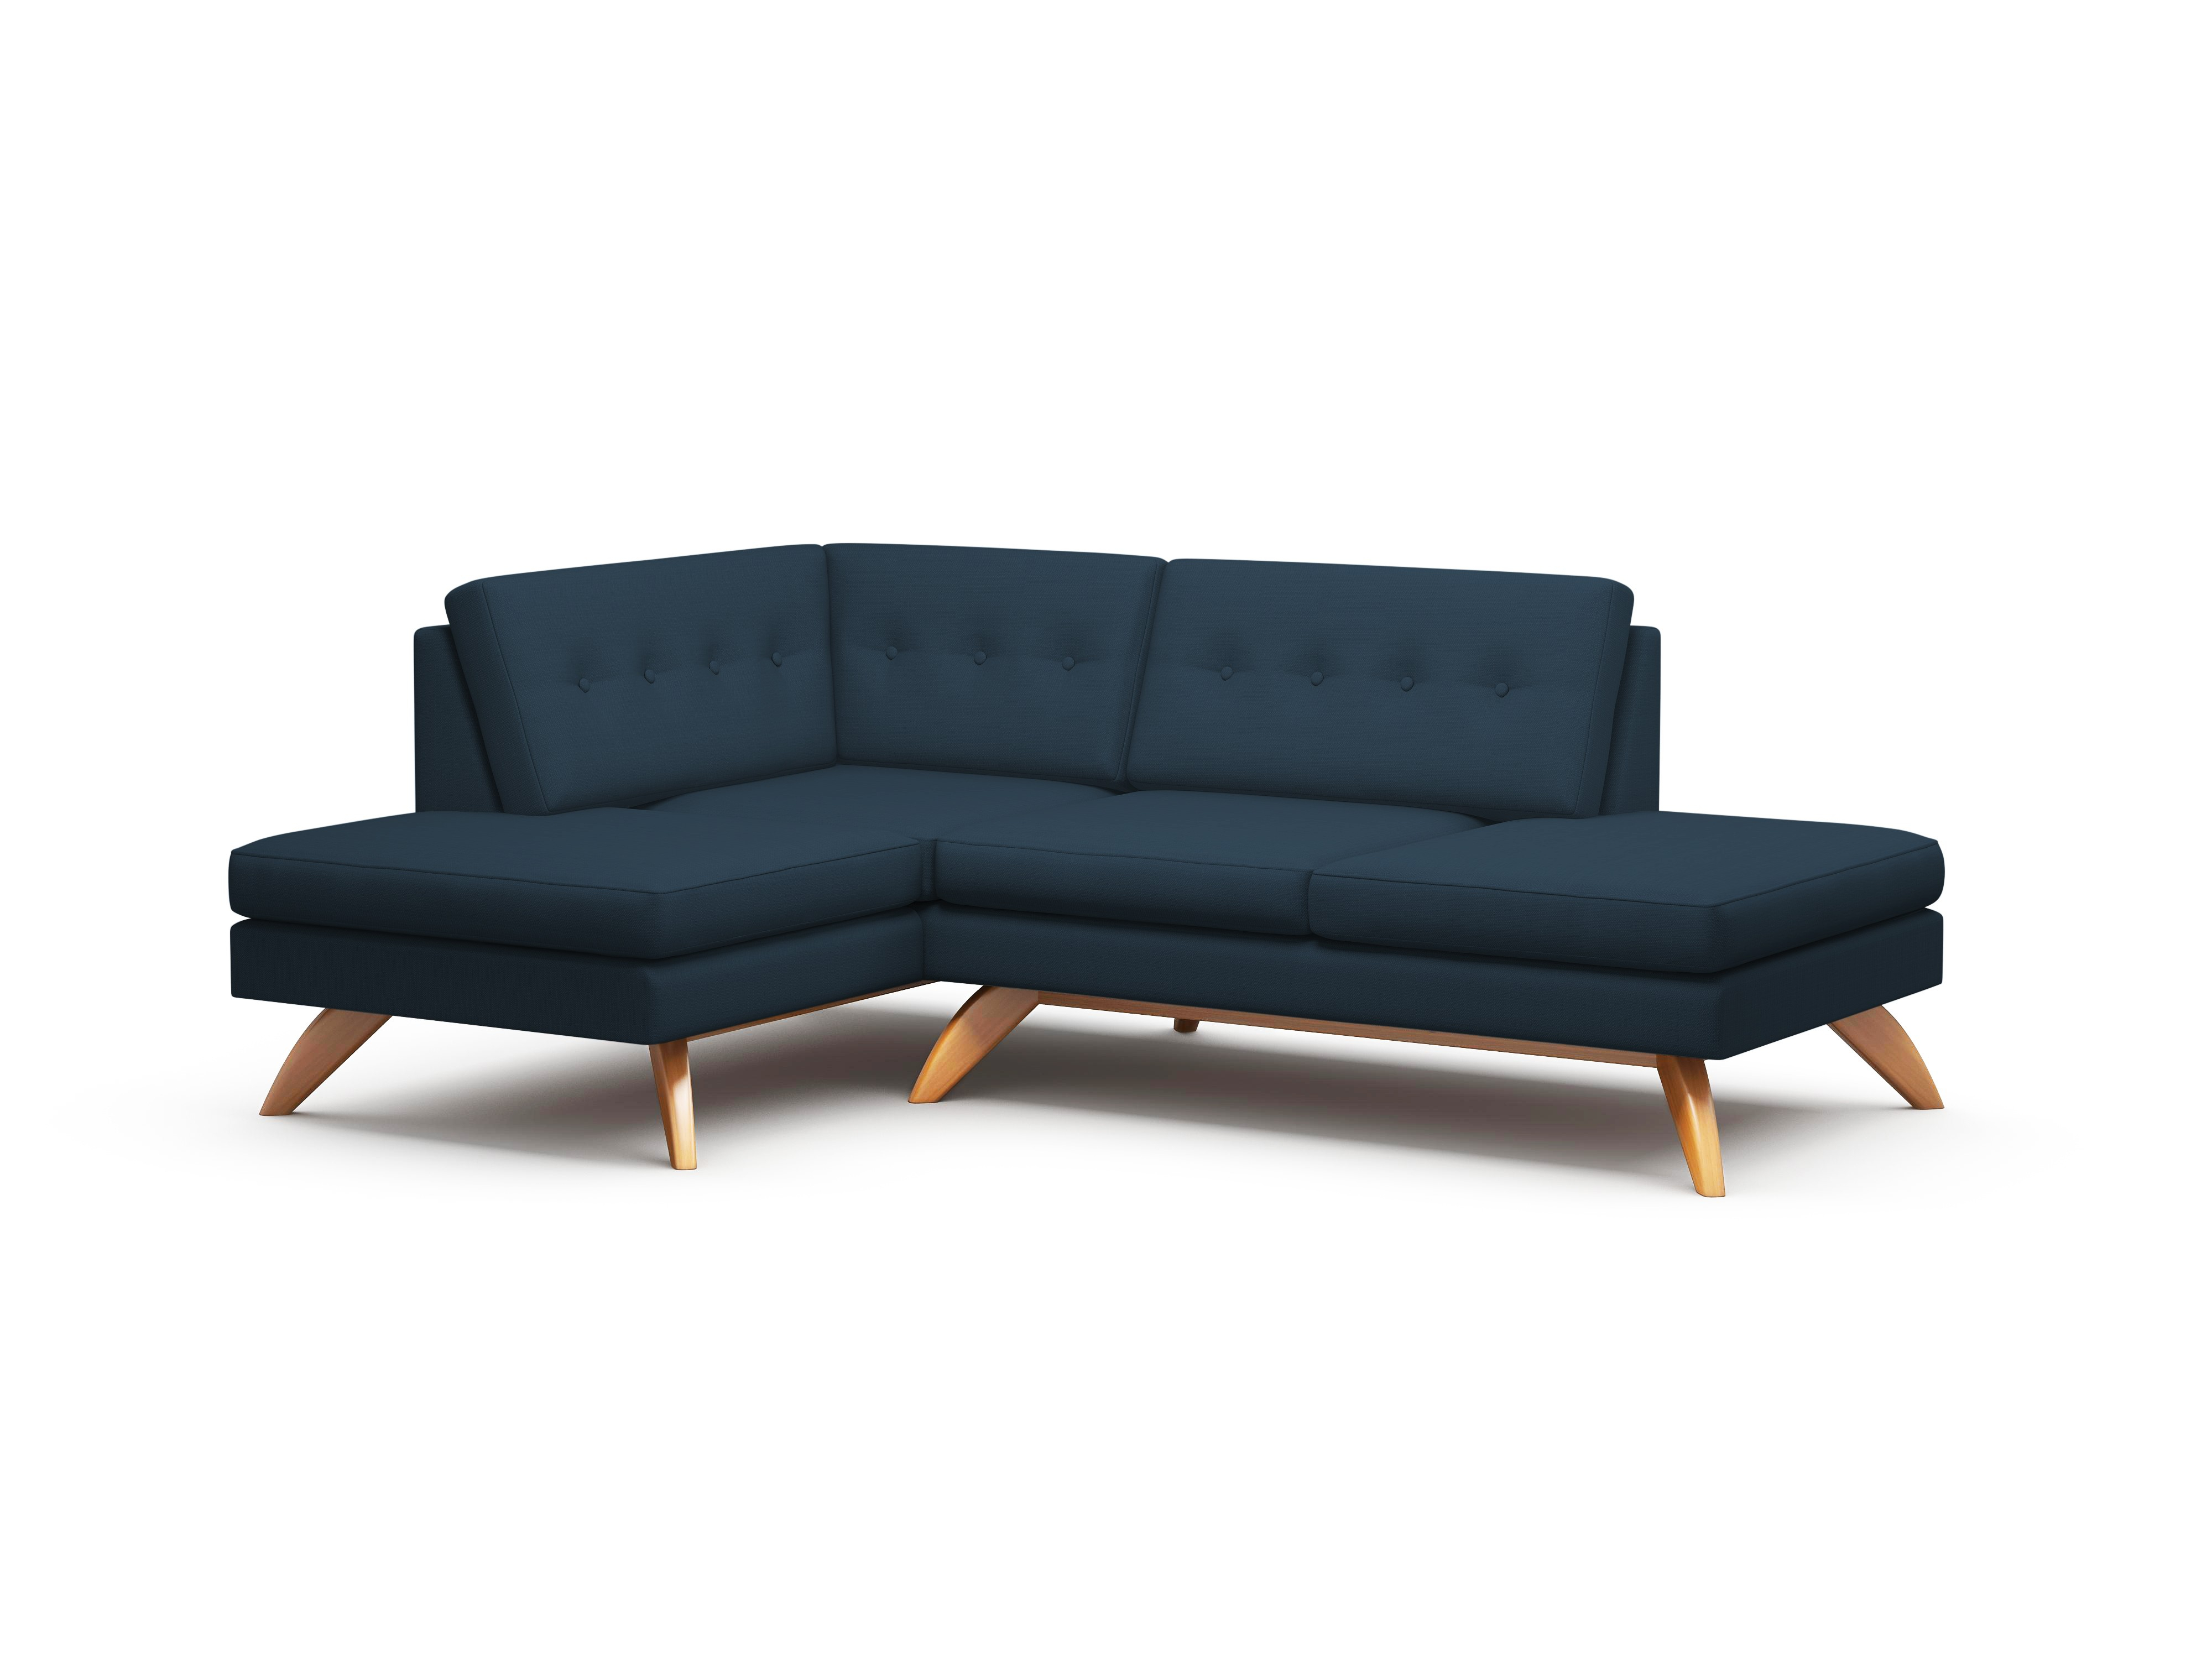 Luna Double Bumper Loft Sofa – Truemodern™ With Regard To Loft Arm Sofa Chairs (Image 18 of 25)